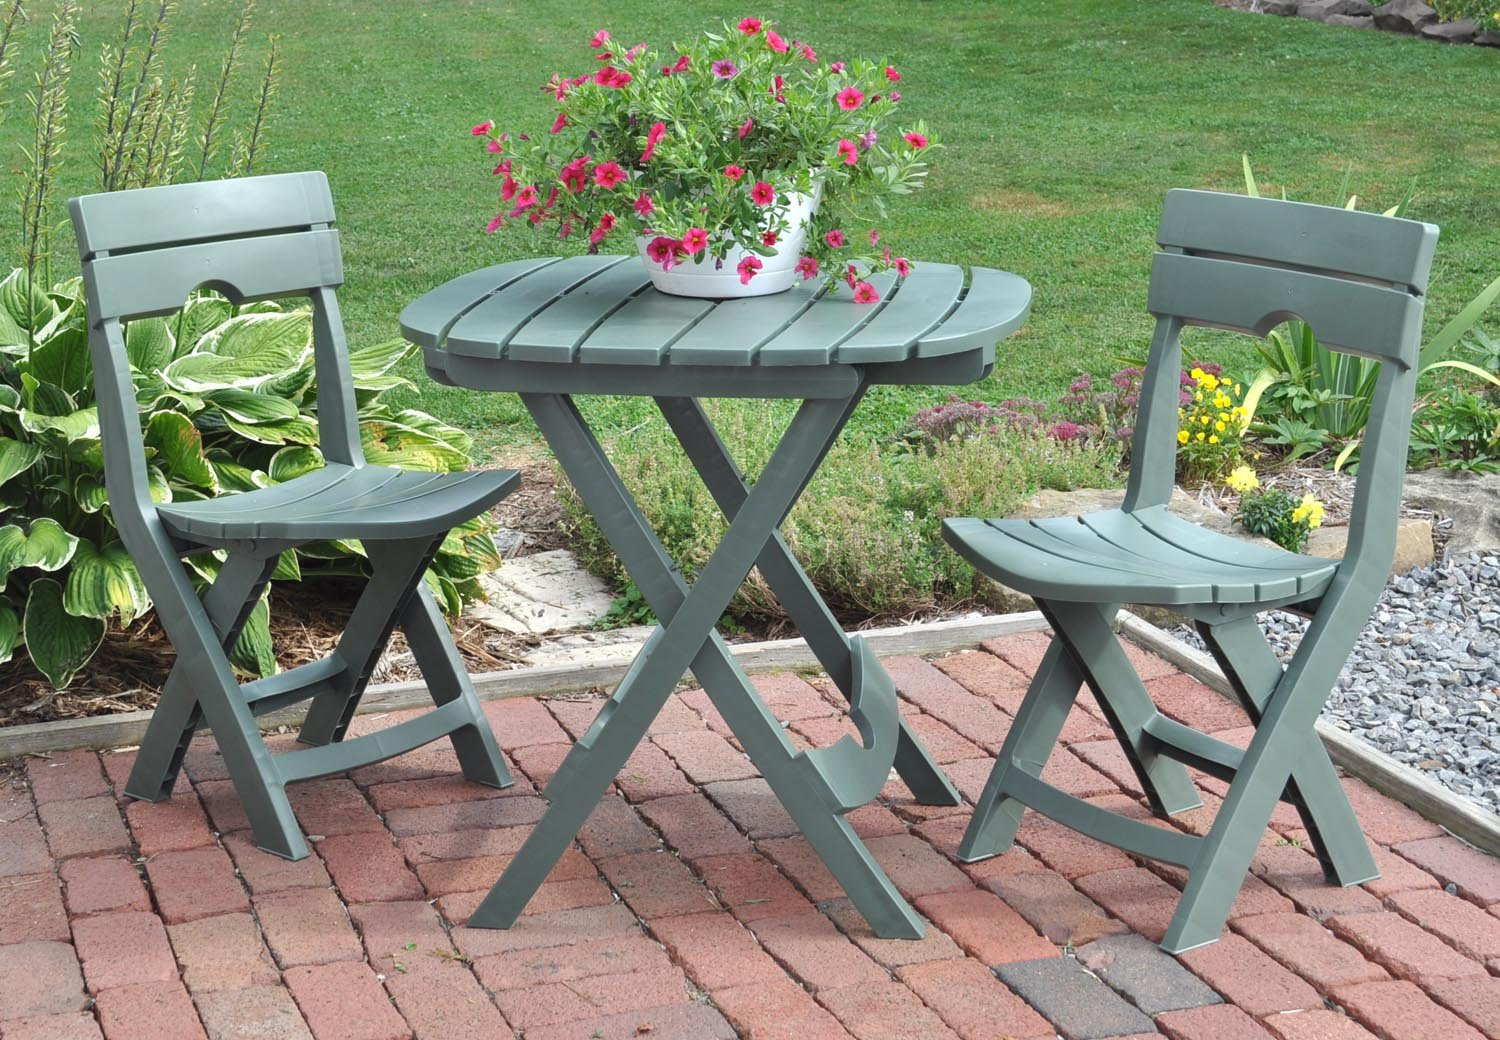 Merveilleux Amazon.com : Adams Manufacturing 8590 01 3731 Quik Fold Cafe Bistro Set,  Sage : Outdoor And Patio Furniture Sets : Garden U0026 Outdoor